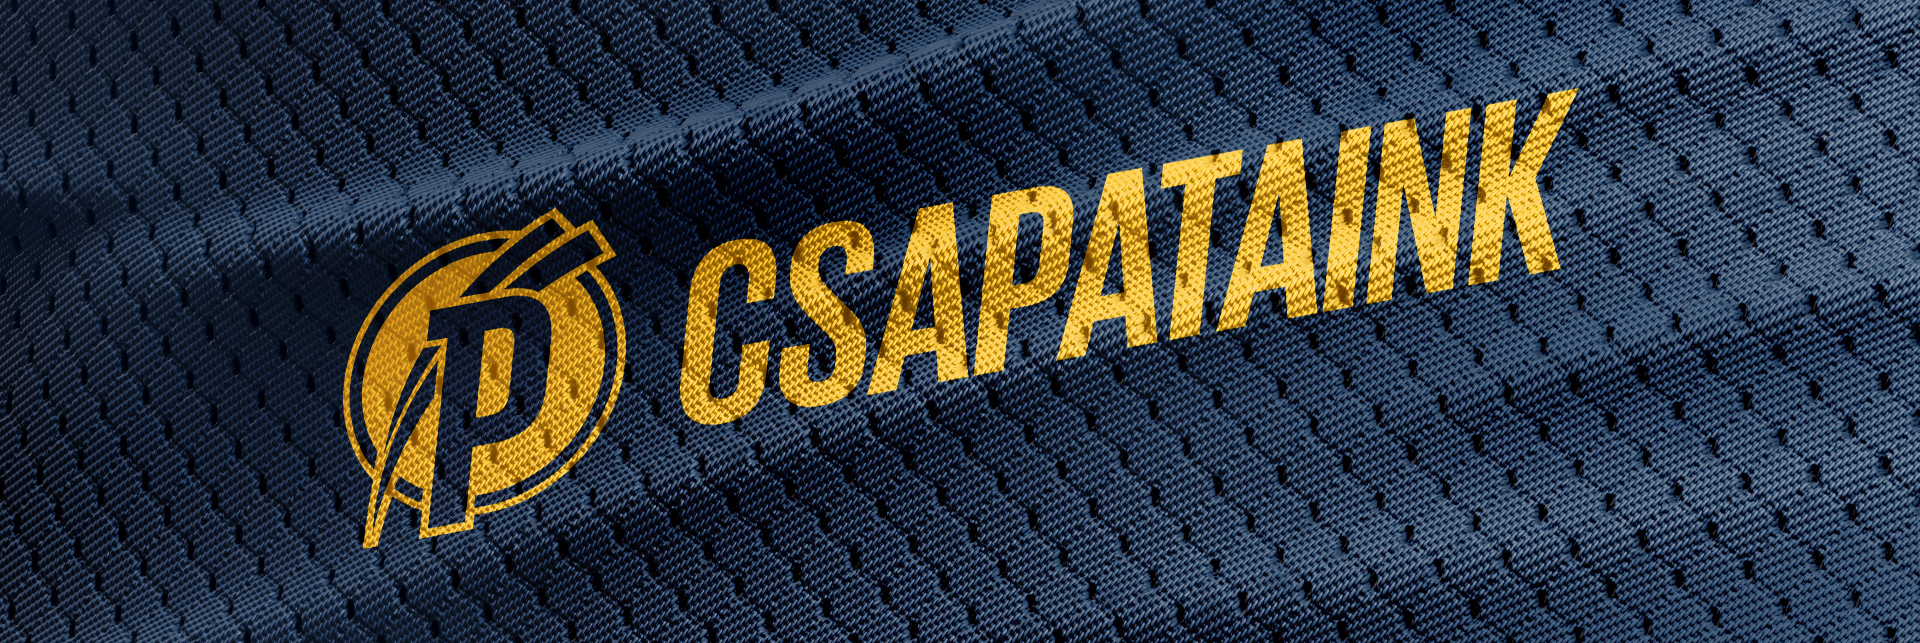 Csapataink